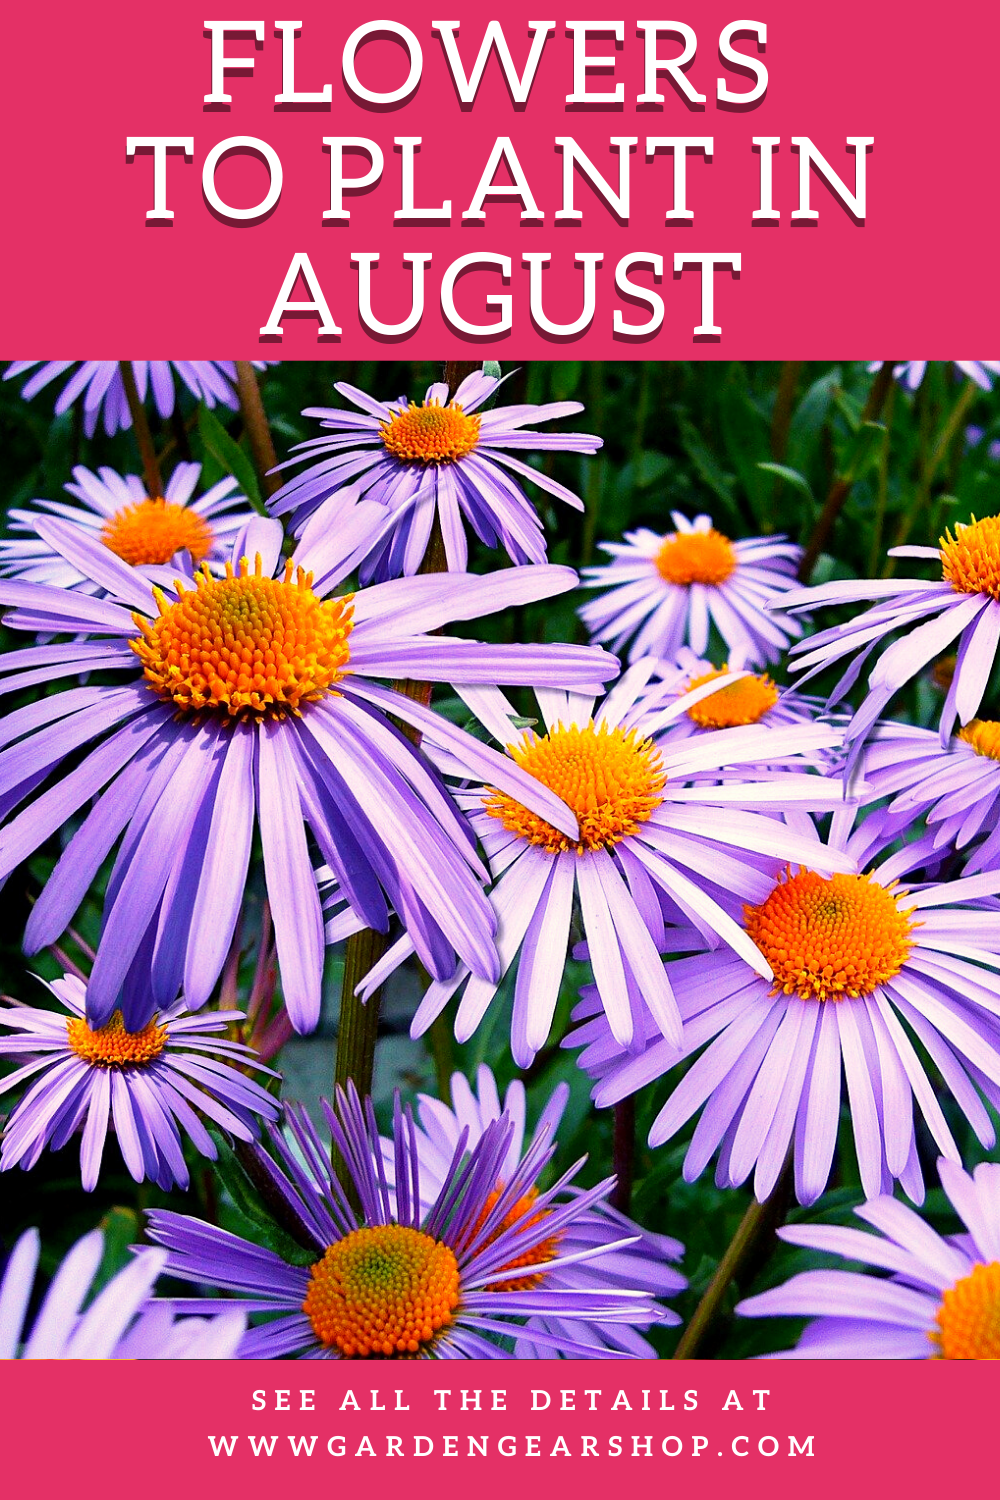 Flowers To Plant In August In 2020 Plants Planting Flowers August Flowers